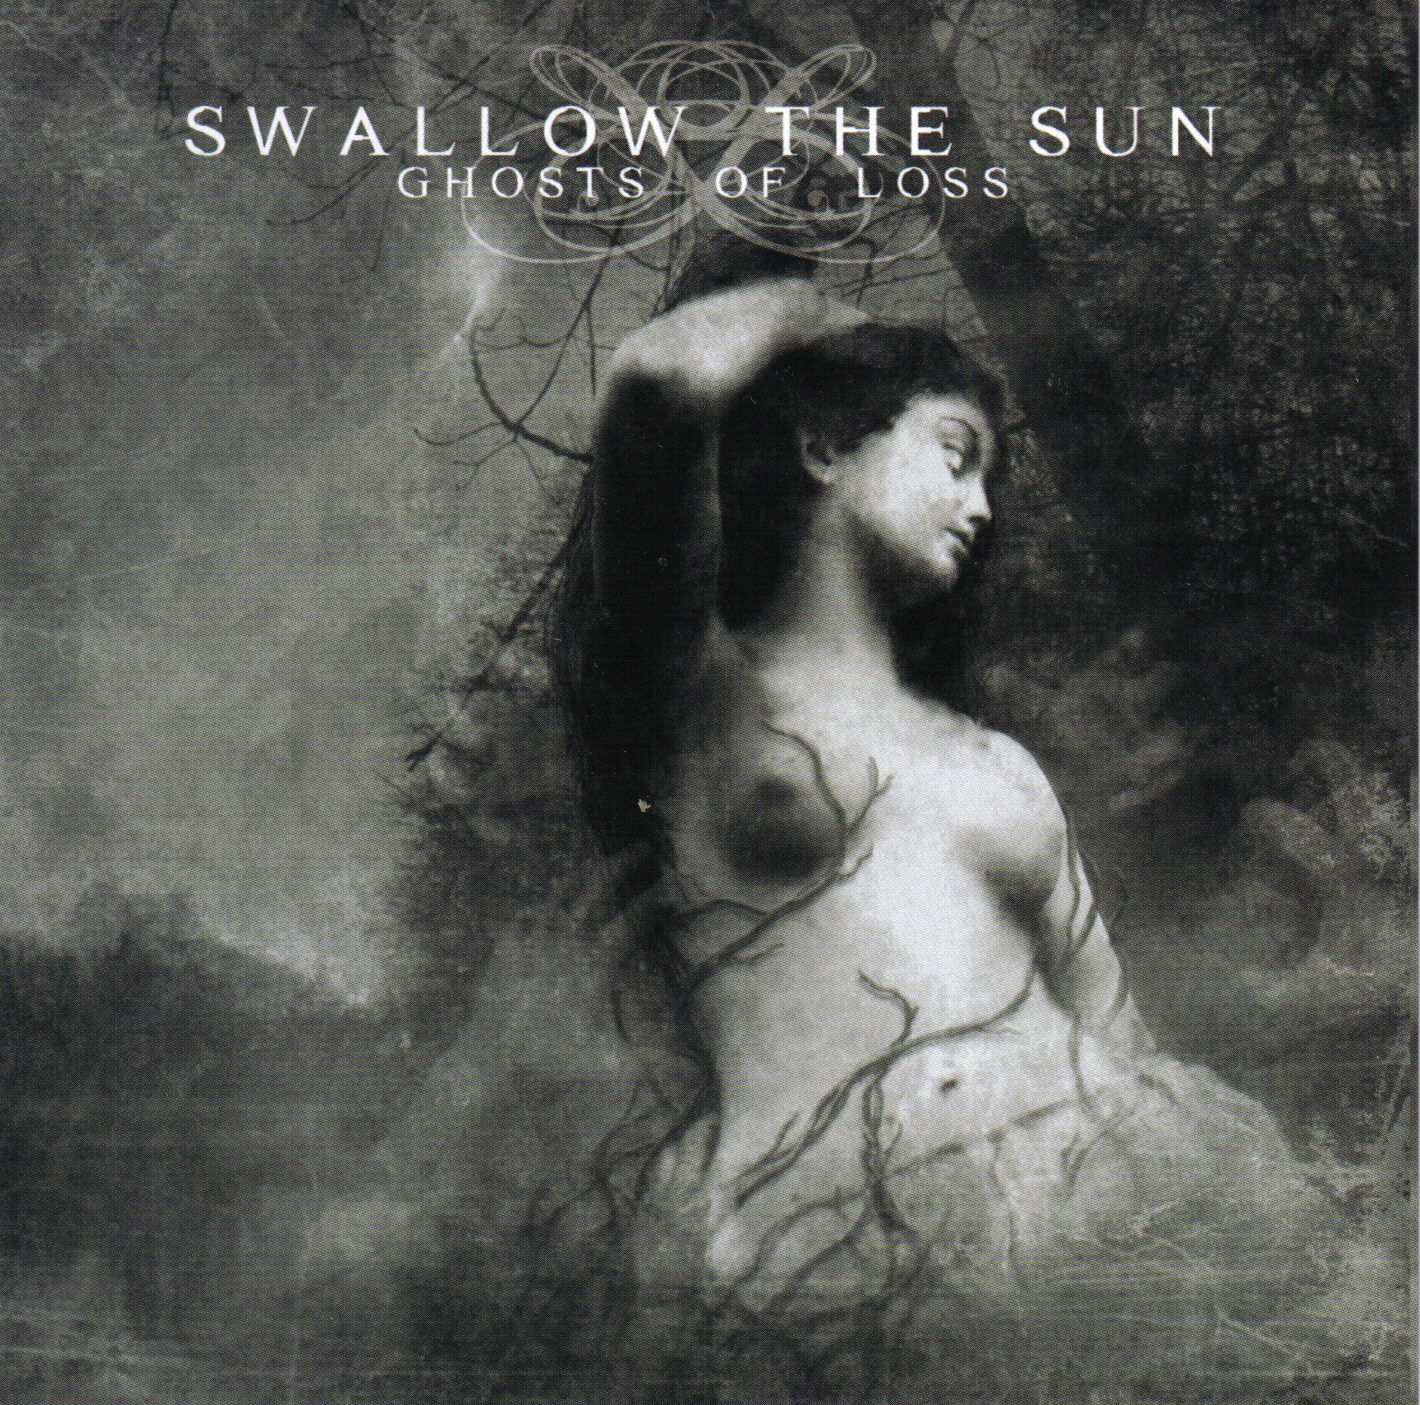 SWALLOW THE SUN Ghosts Of Loss